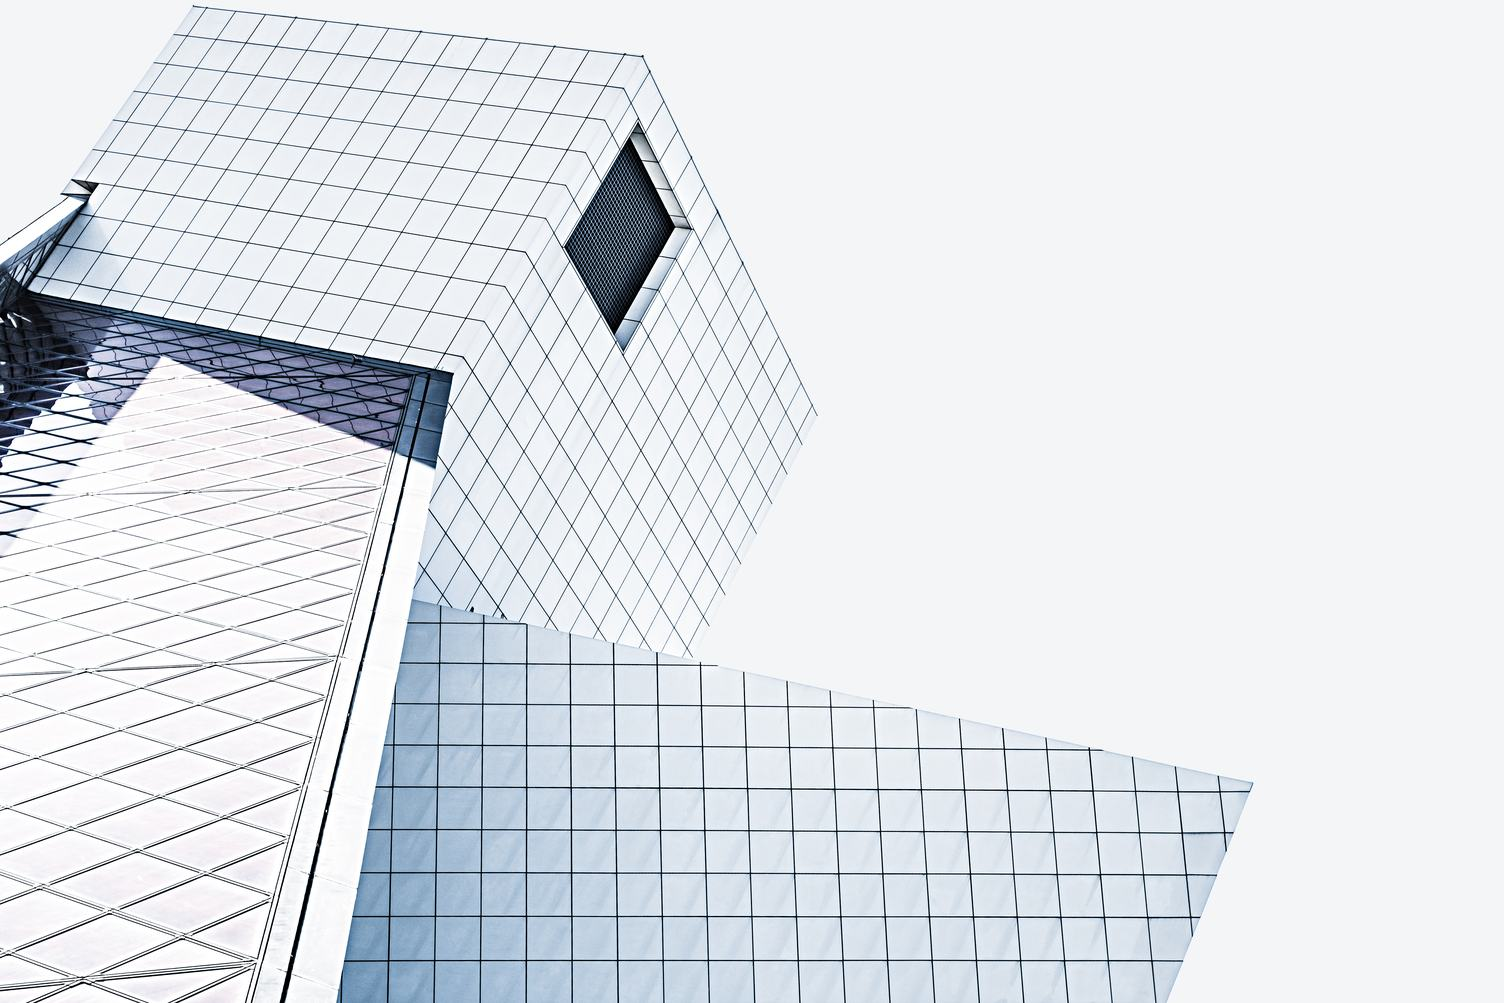 Modern Architecture - Building with Facade of Glass